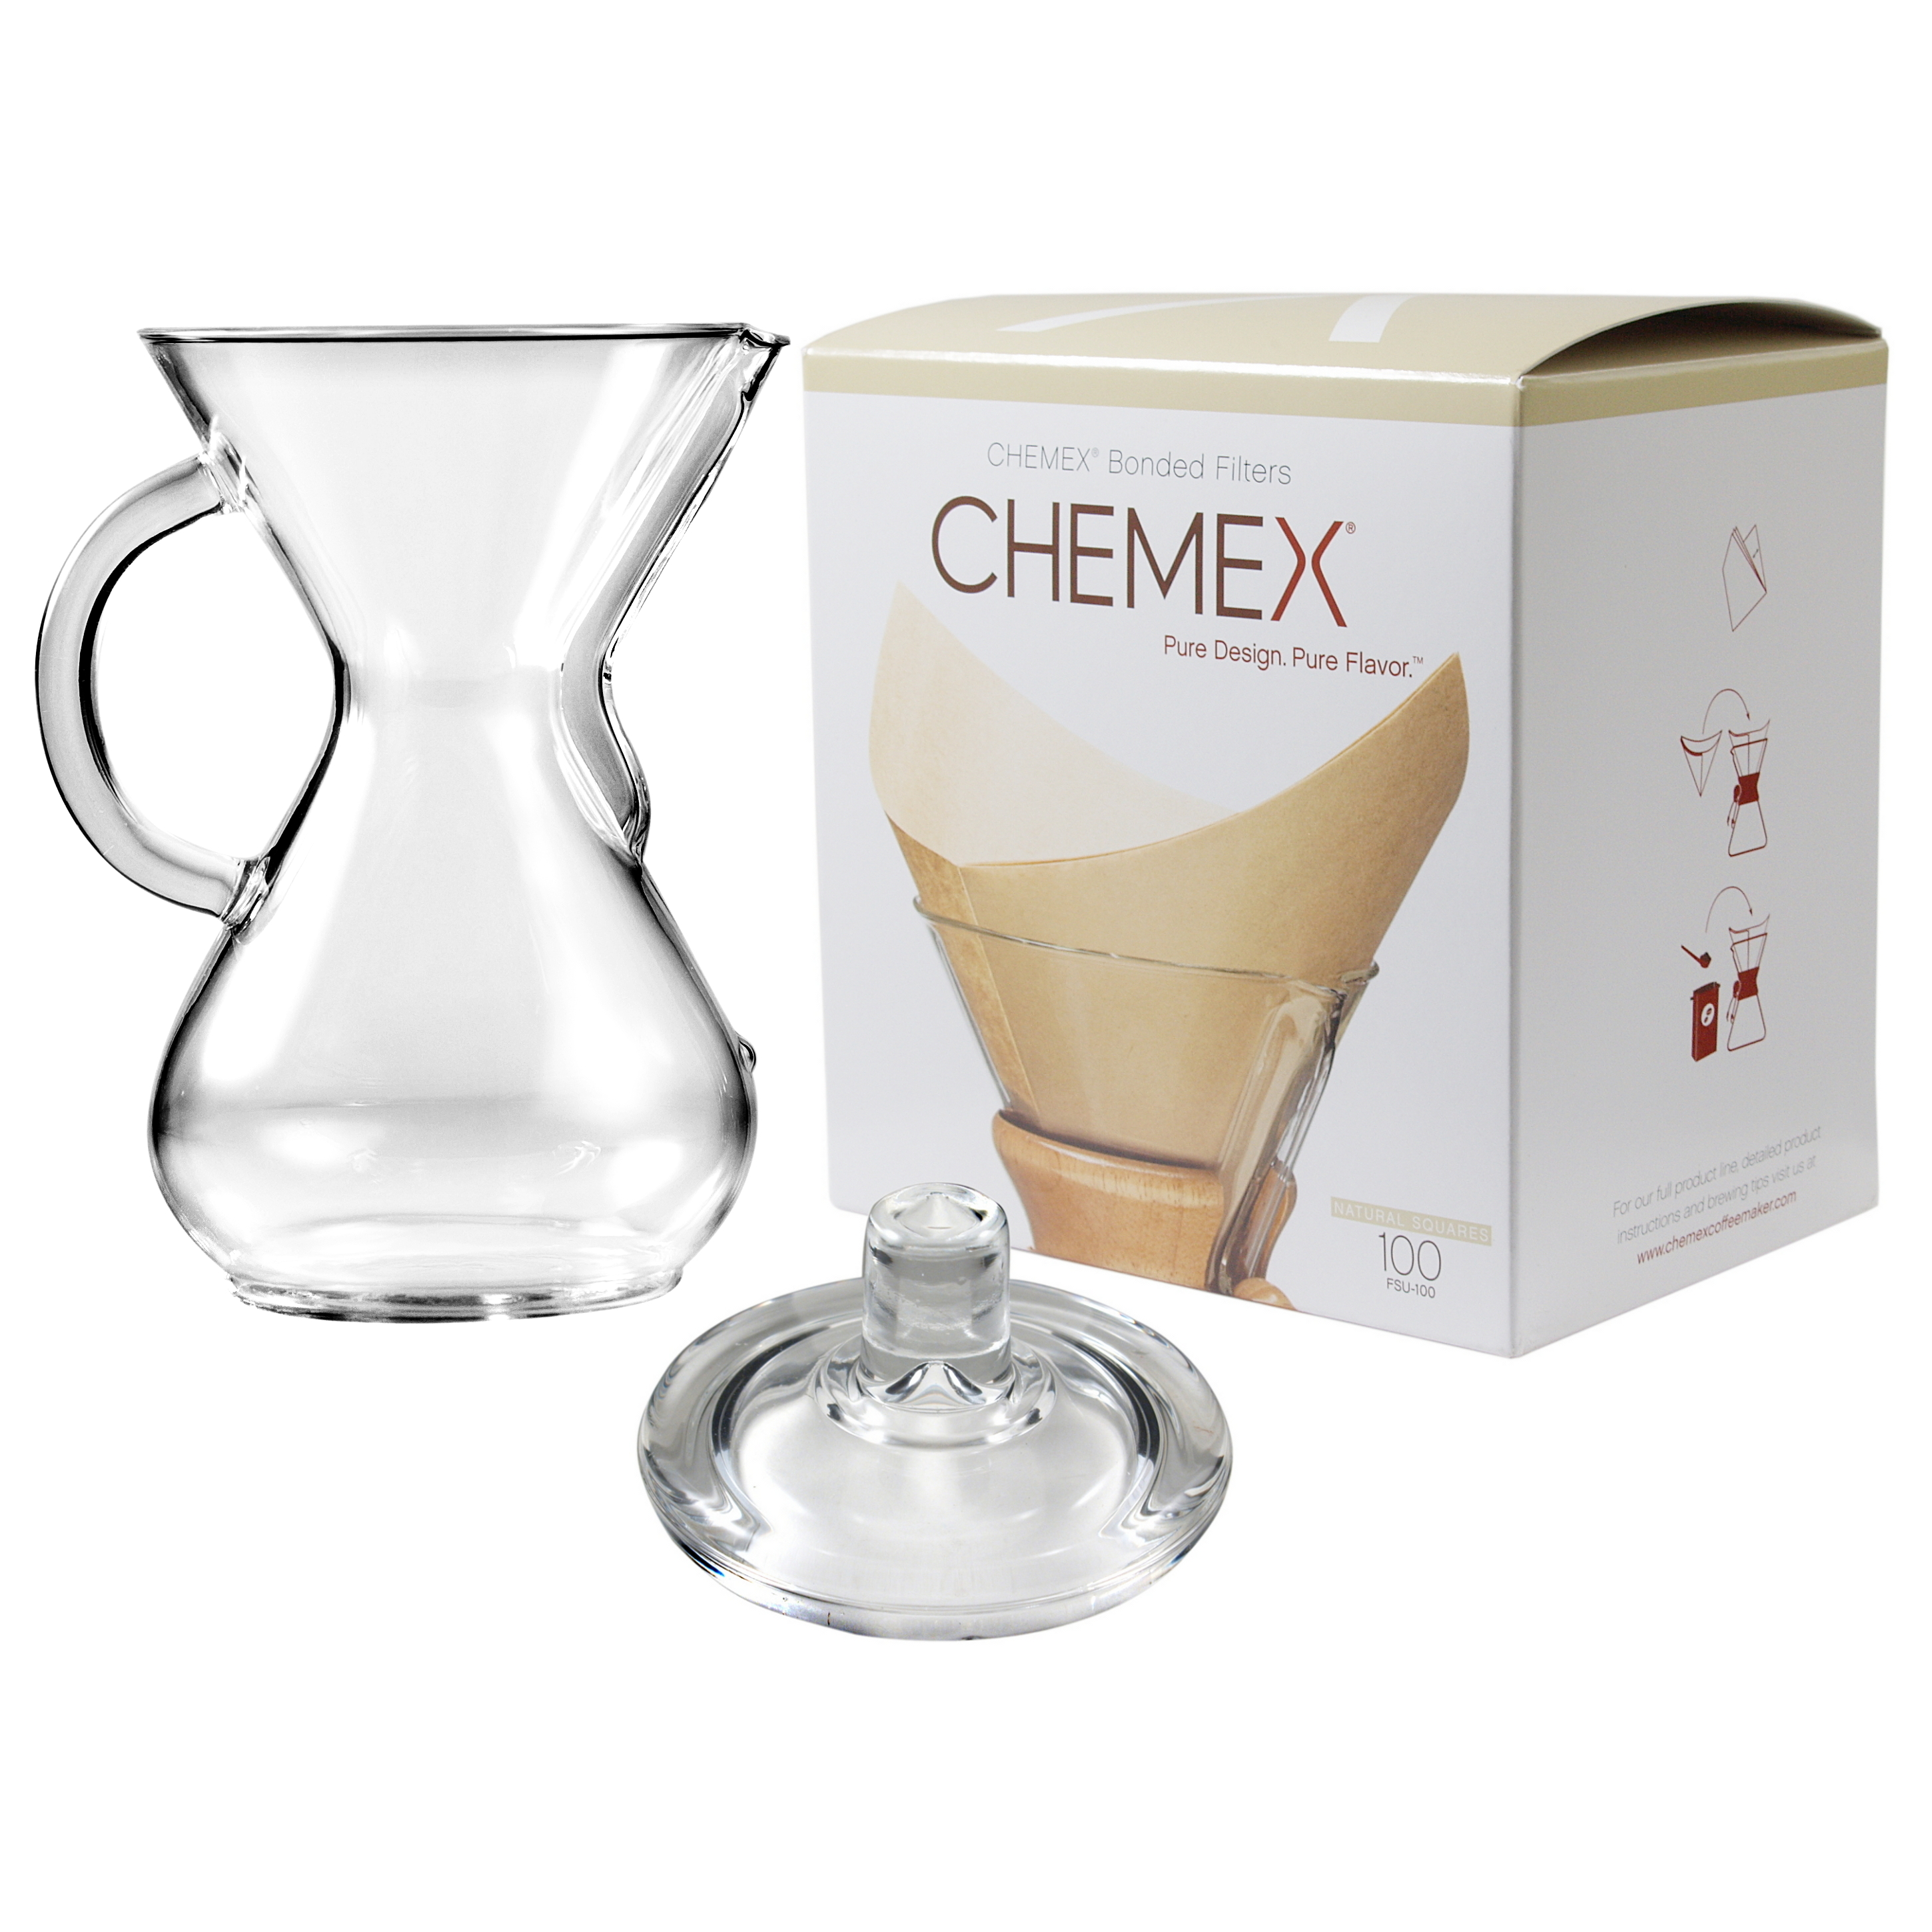 Chemex Glass 30 Ounce Coffee Maker with Cover and 100 Count Bonded Unbleached Pre-Folded Square Coffee Filters